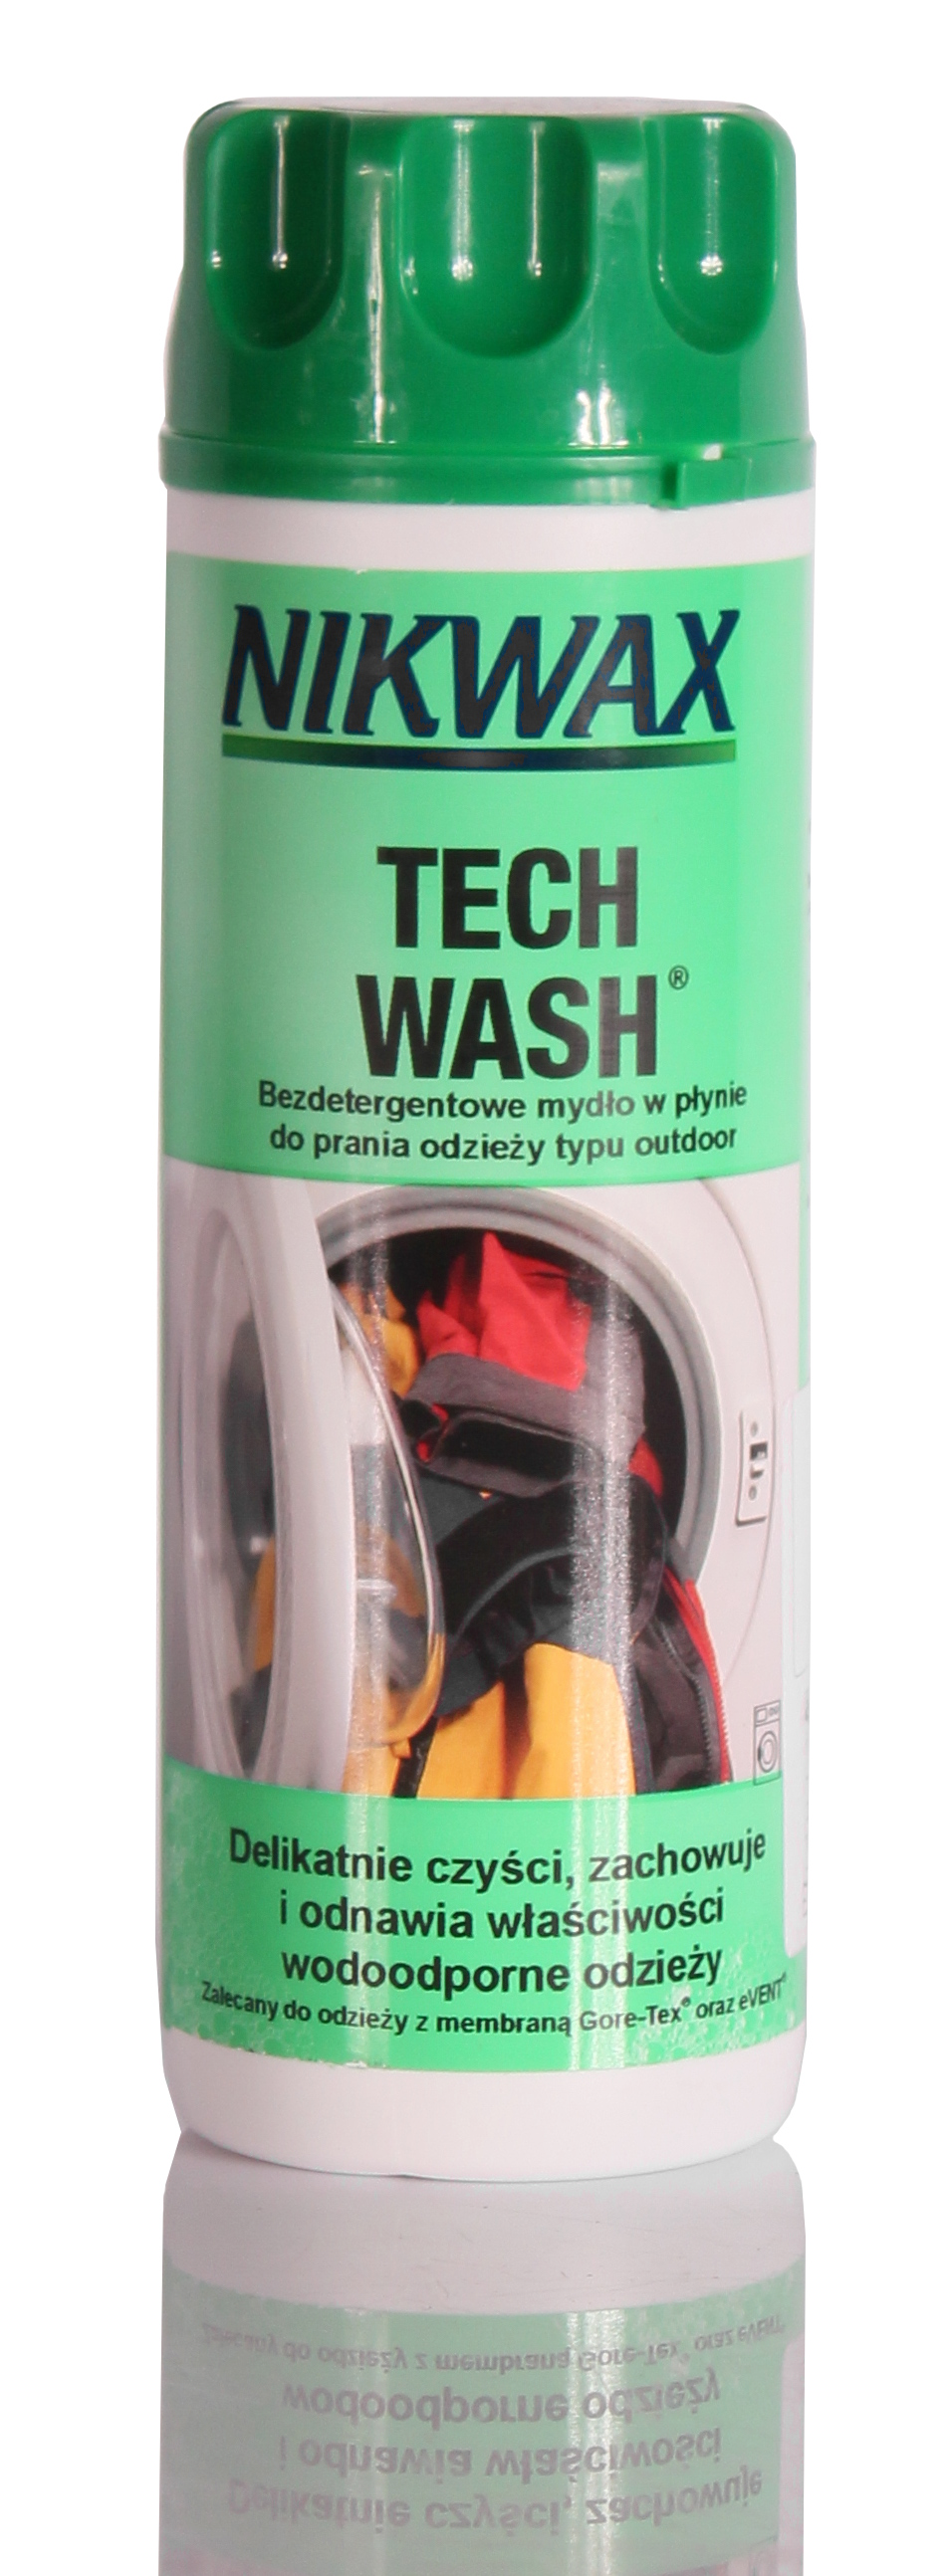 Środek Piorący Nikwax (Tech Wash) 300ml